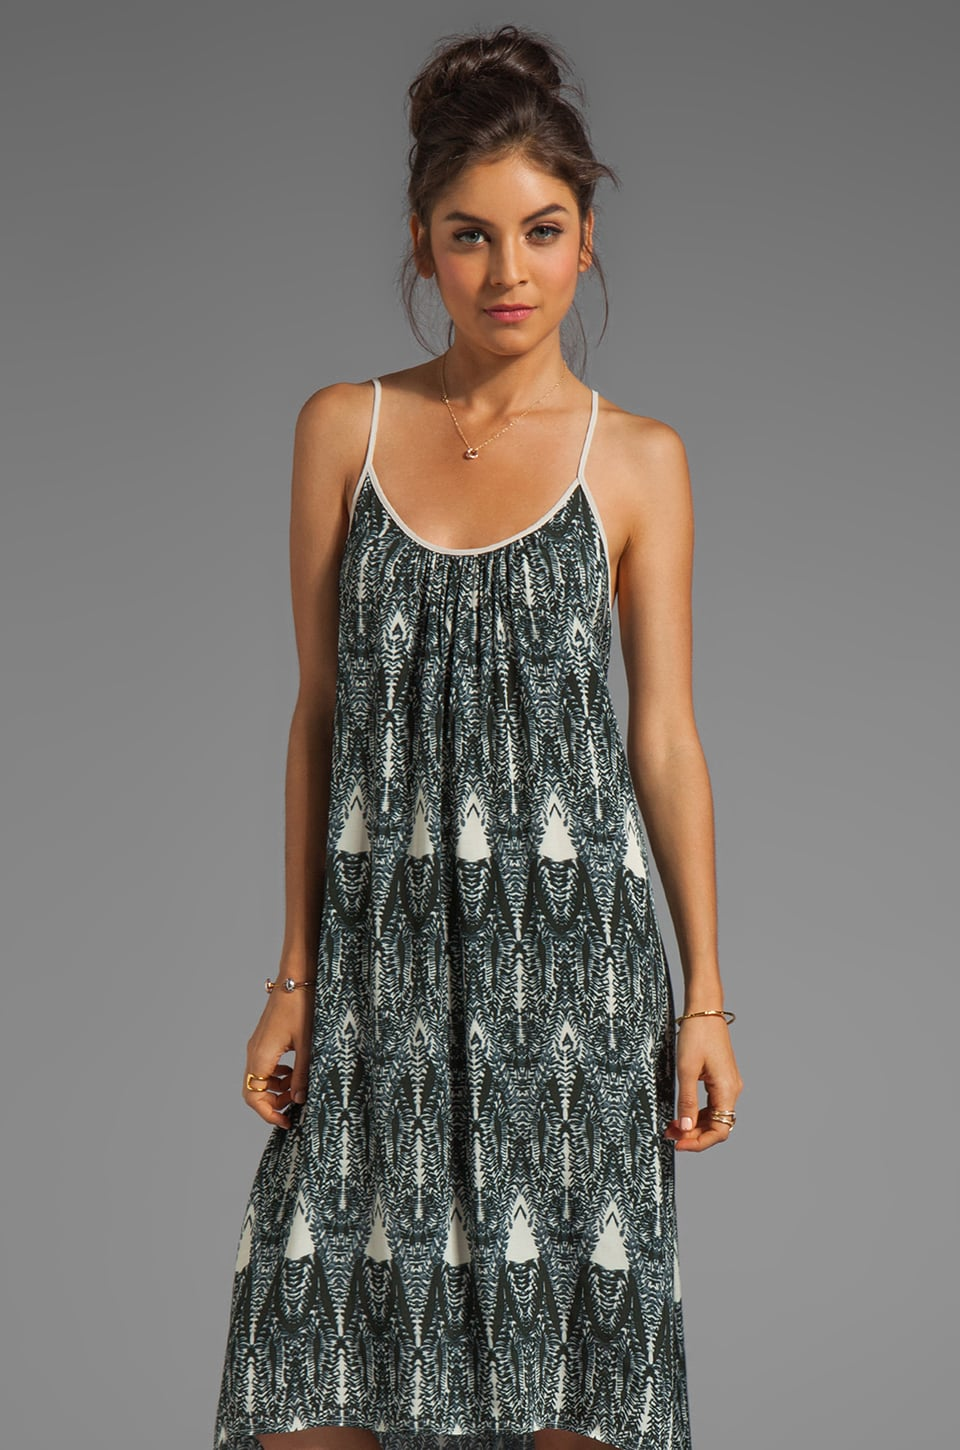 SAM&LAVI Bisa Dress in Jungelina Print